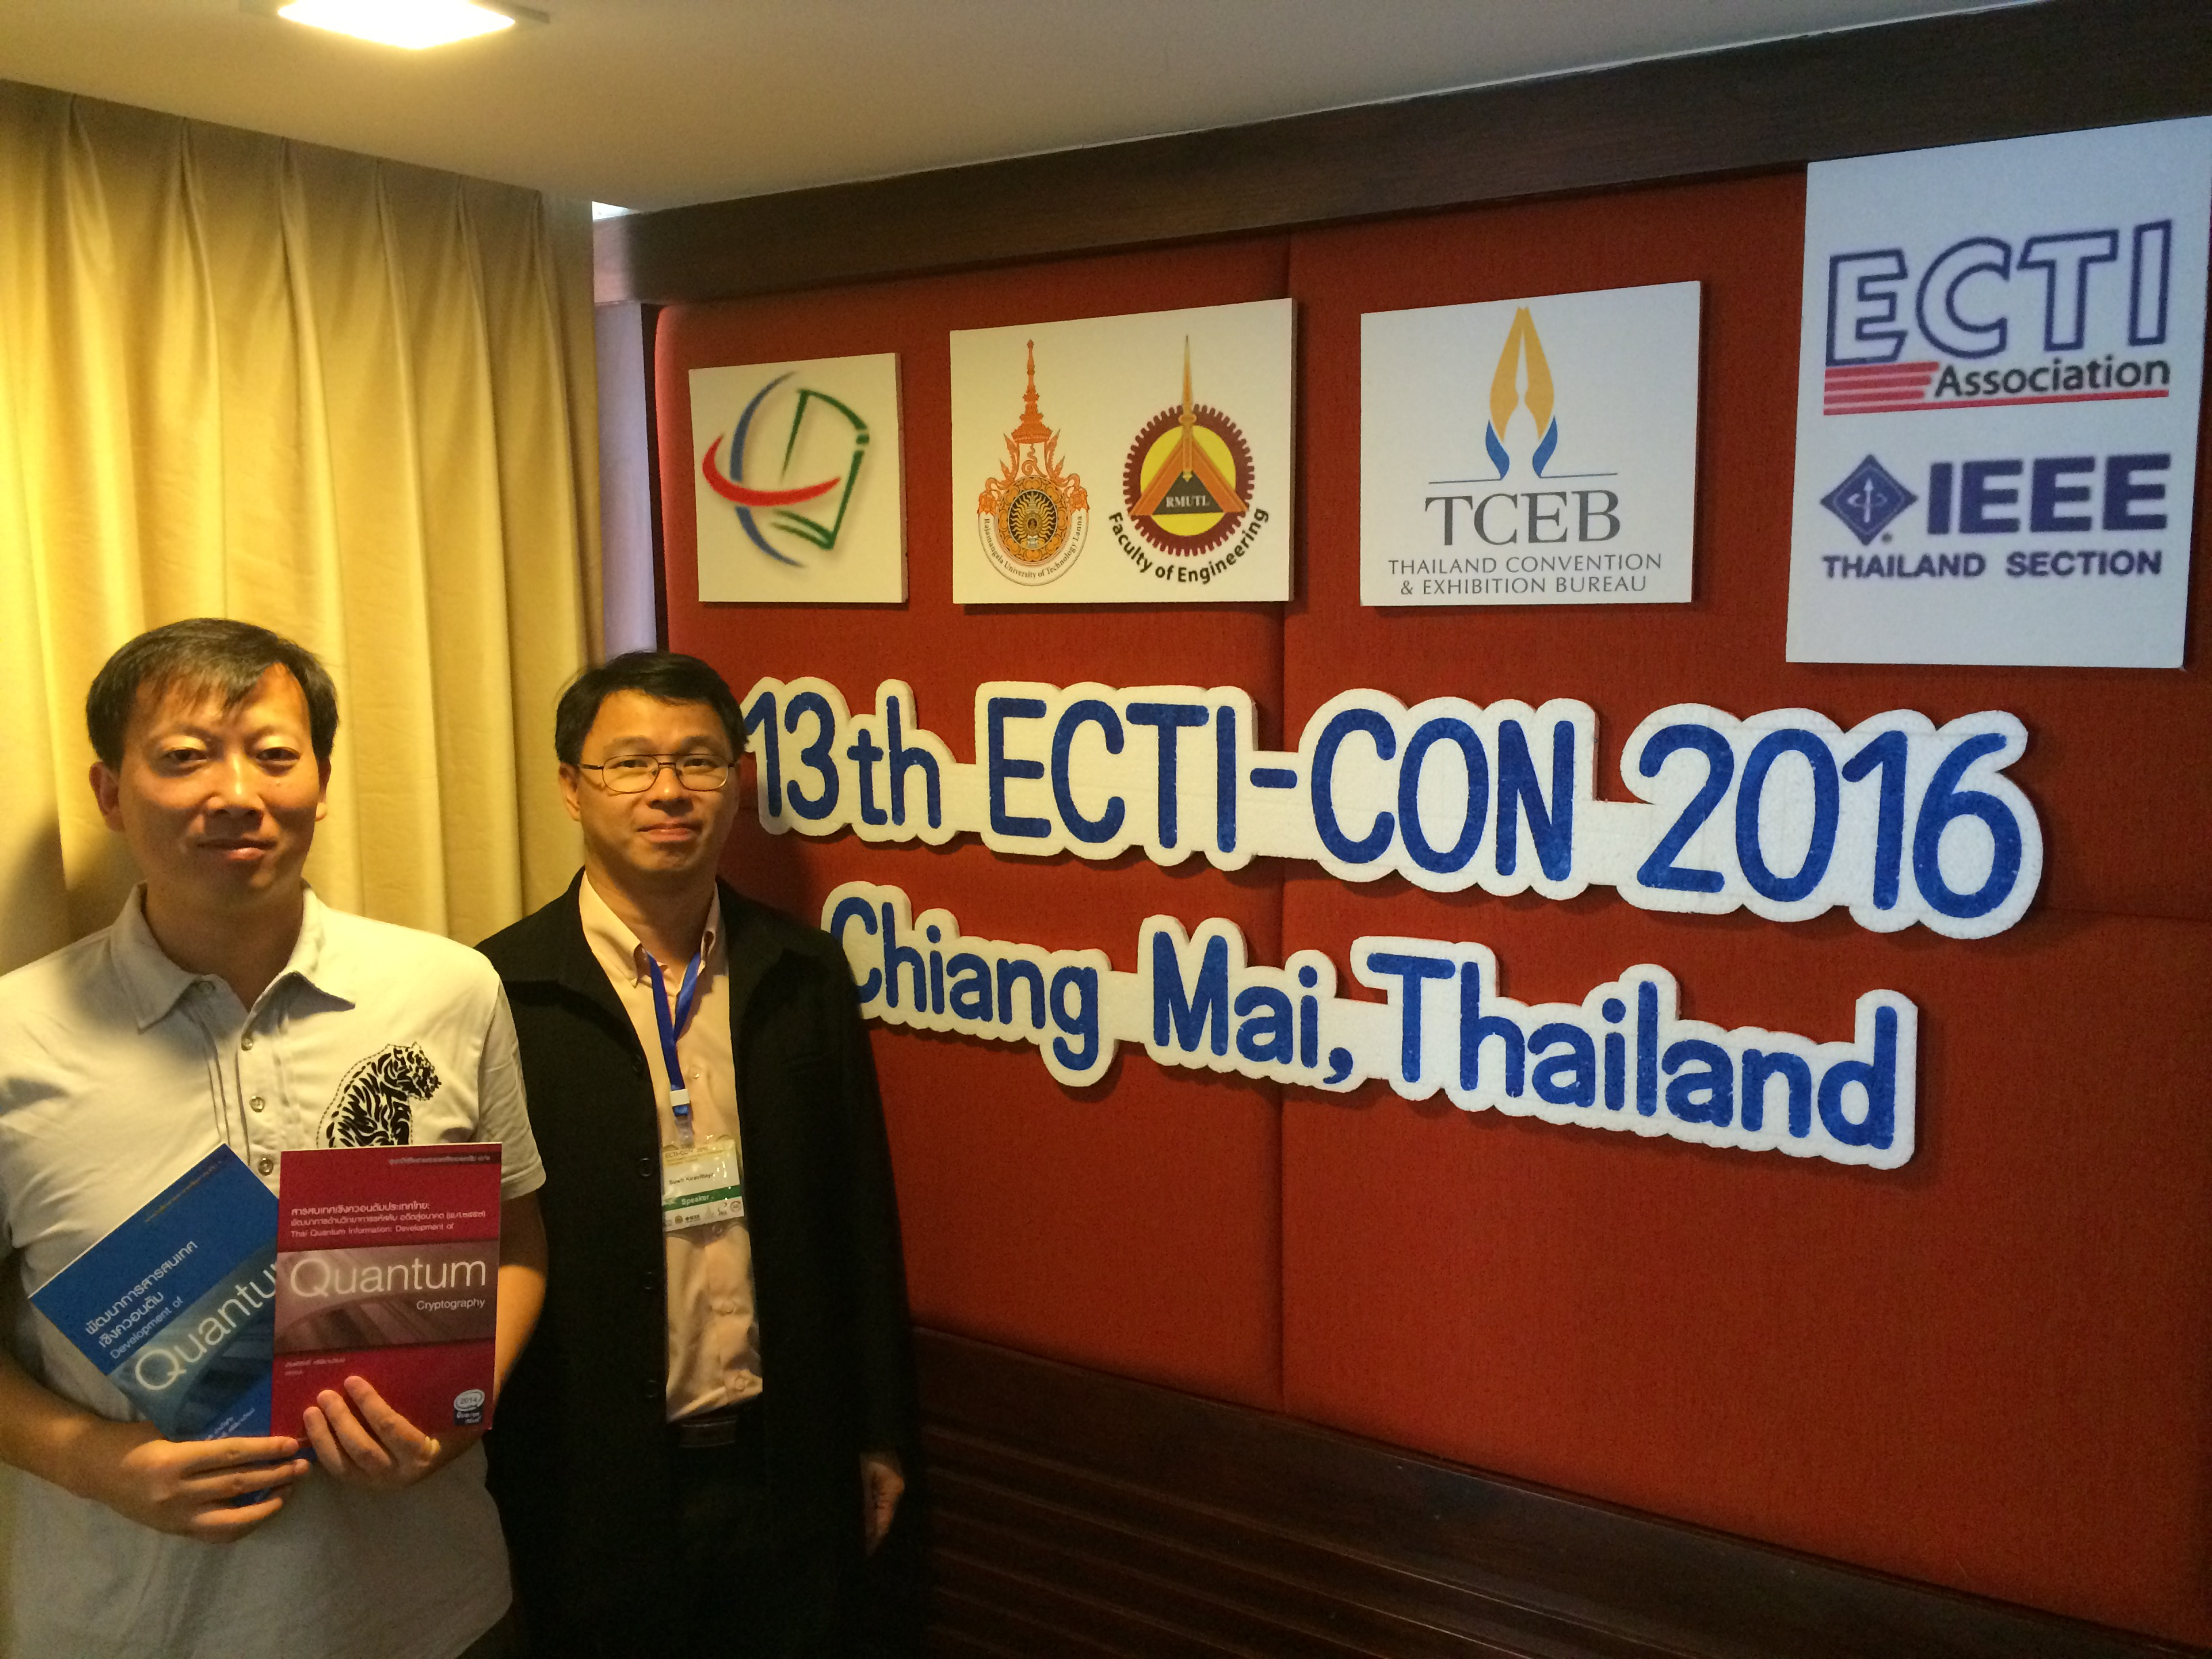 2016 - ECTI-Con workshop